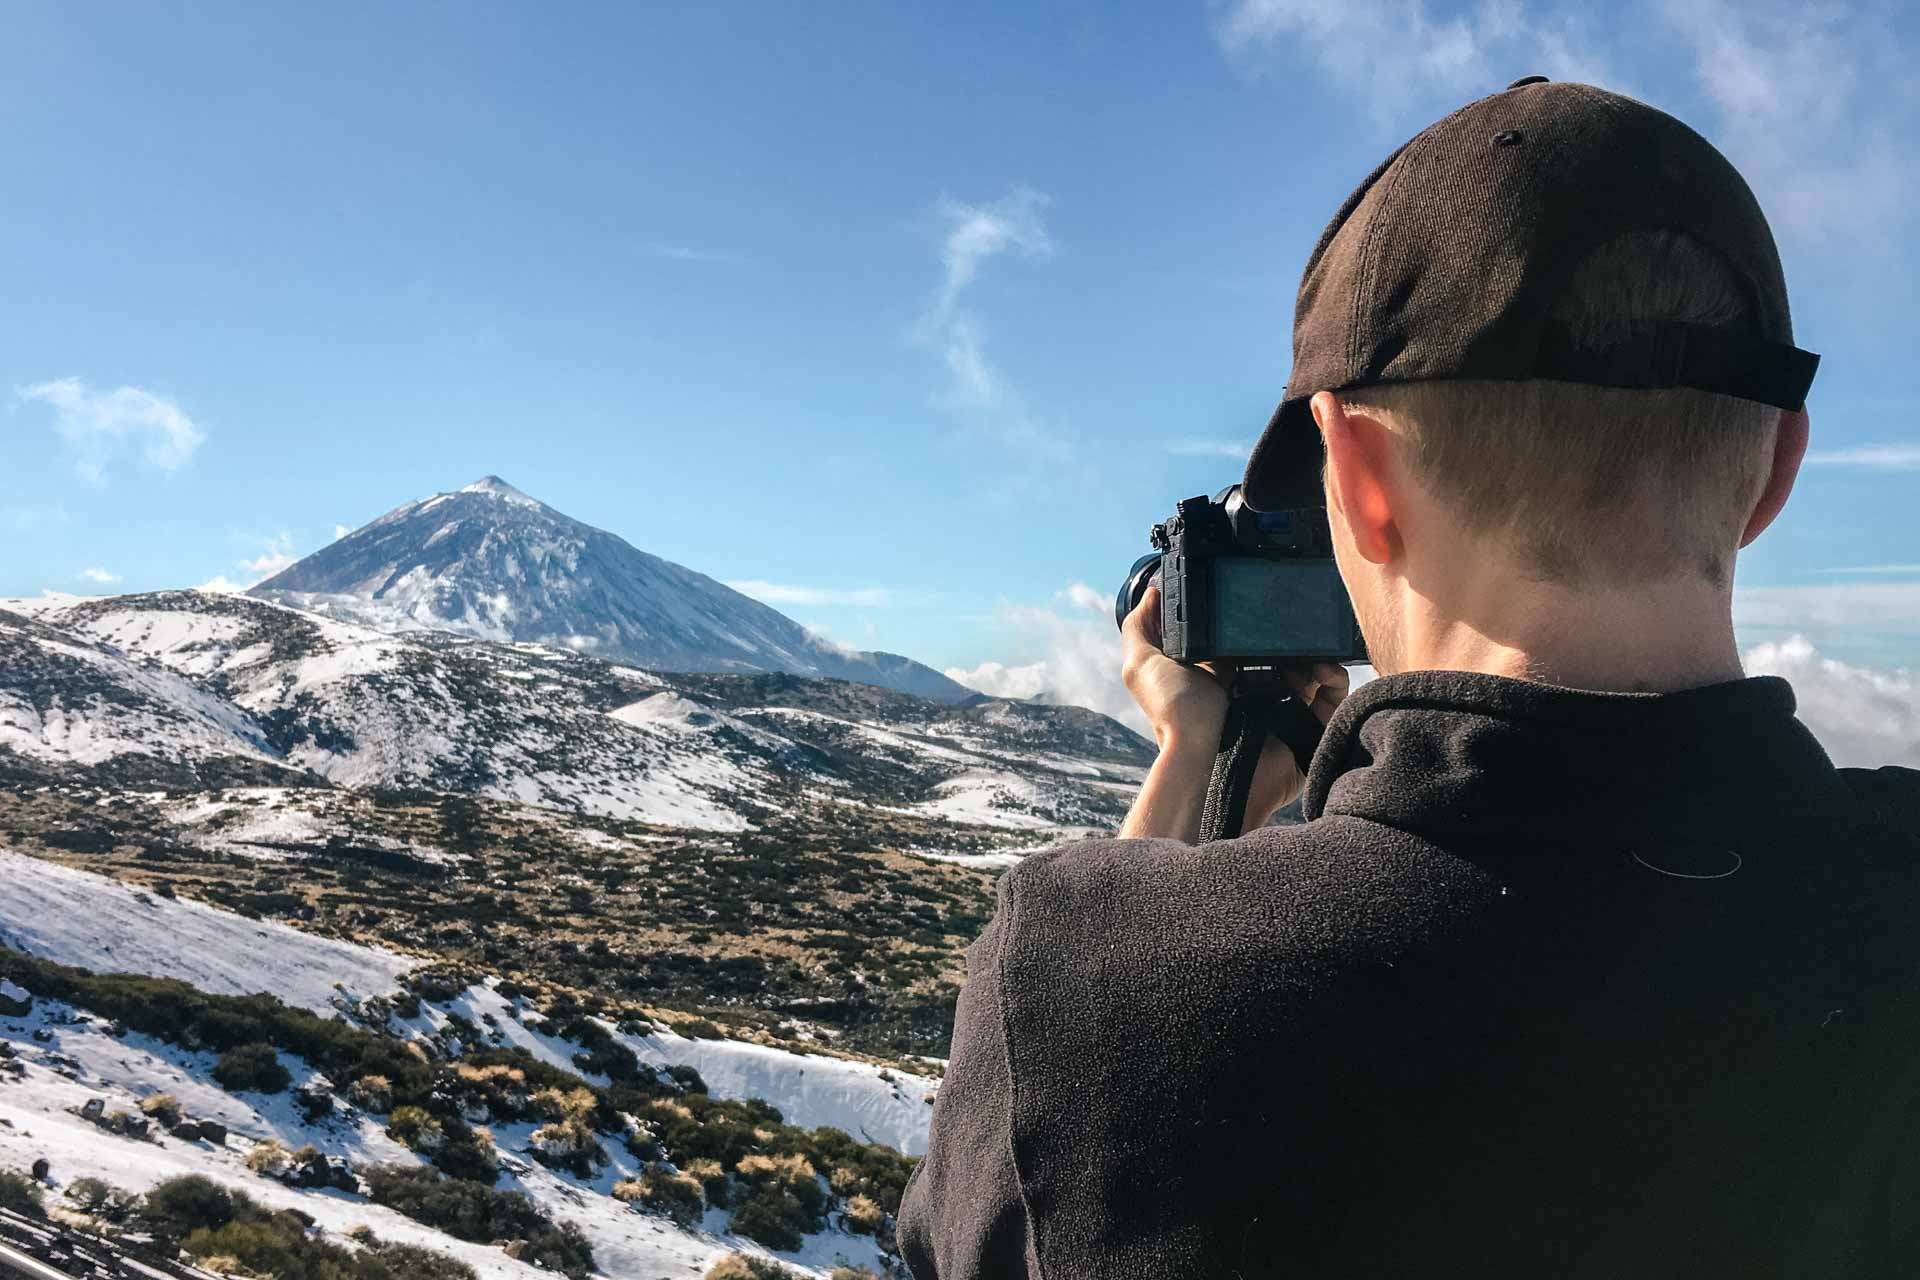 What's in Our Camera Bag? Lightweight Photography Gear for High-Quality Travel Content